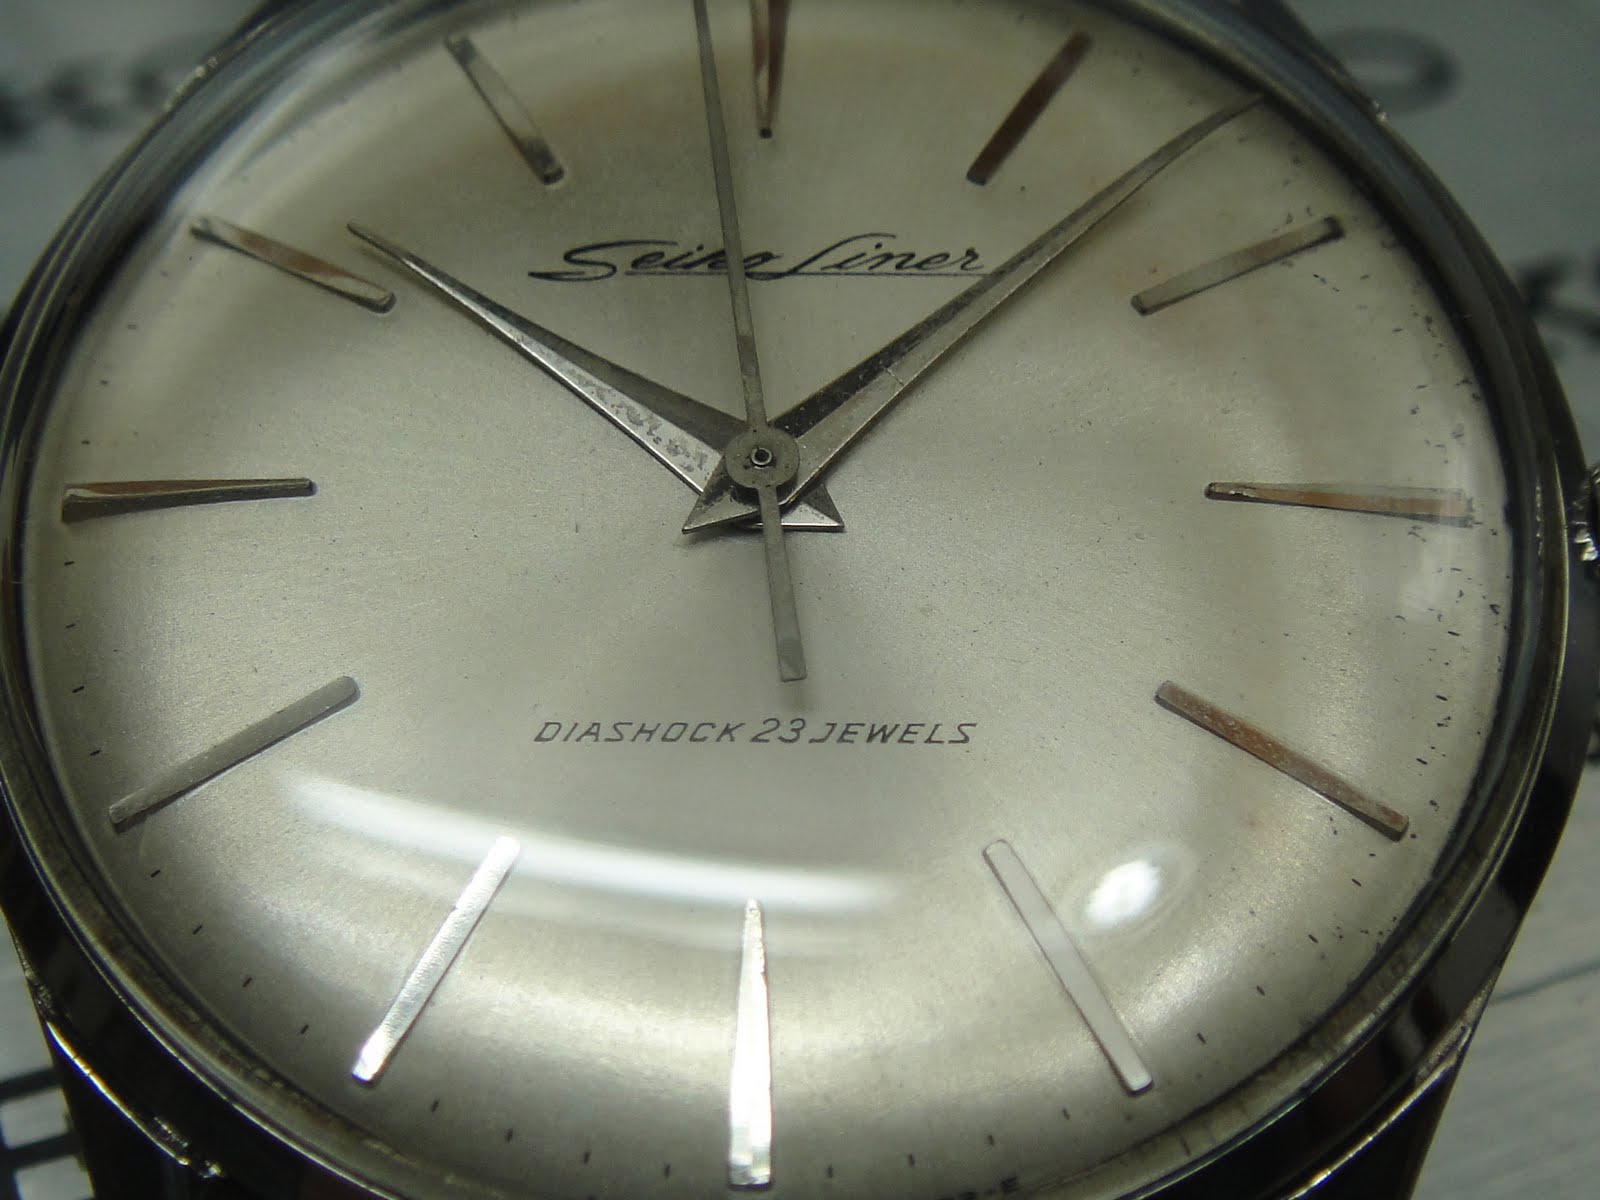 Antique Watch Bar Seiko Liner Diashock 03 Sold